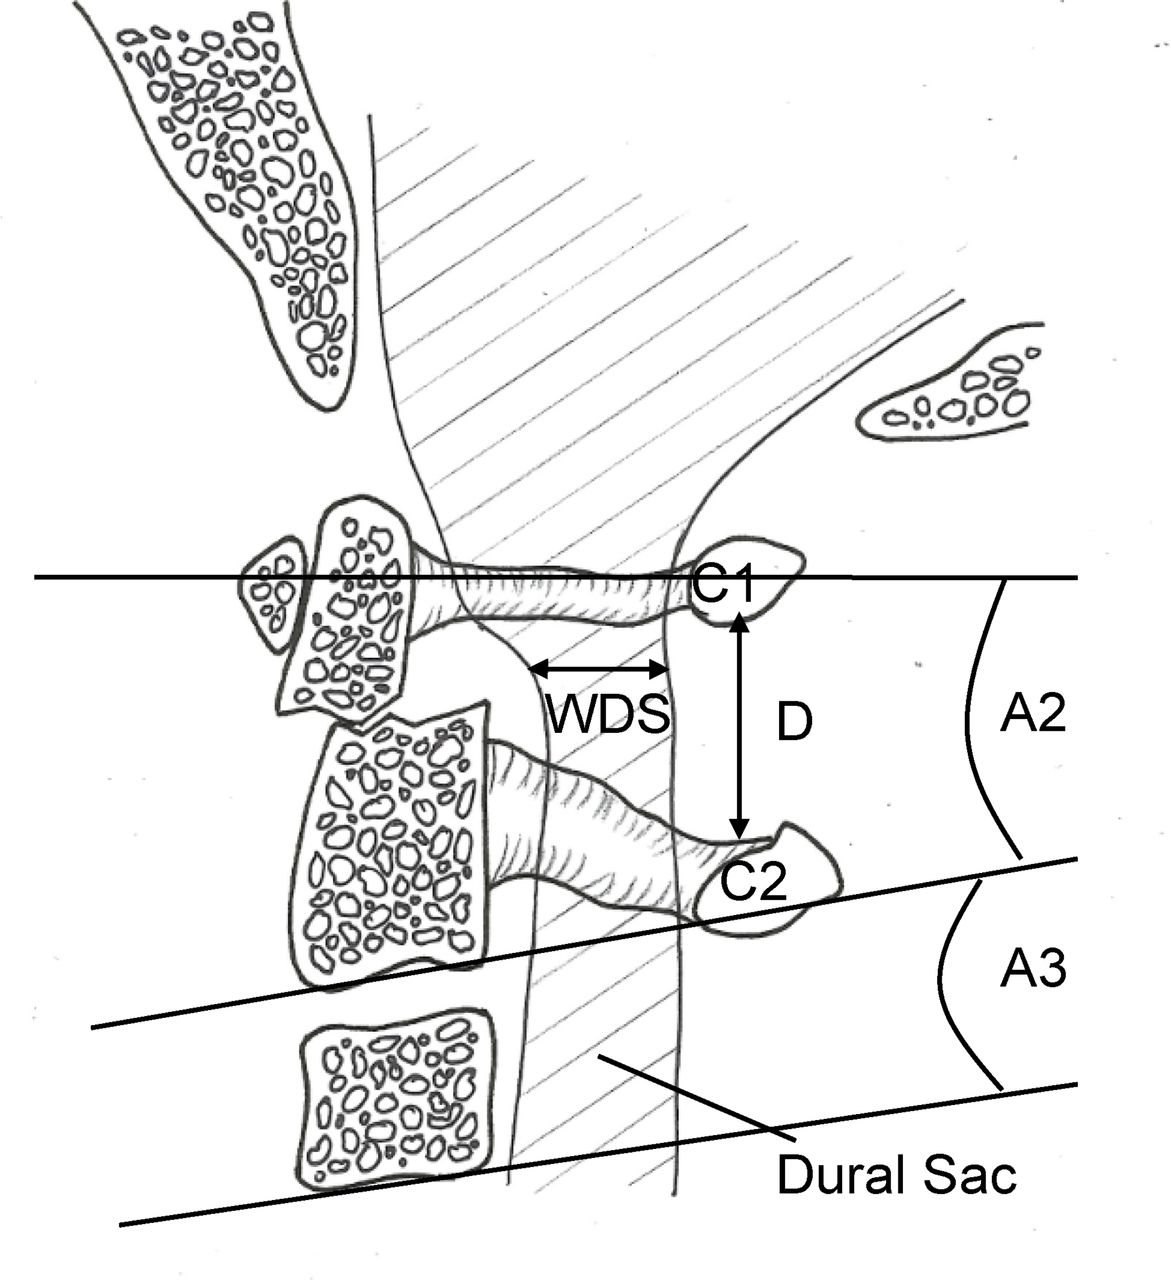 Cadaveric Study Of Movement In The Unstable Upper Cervical